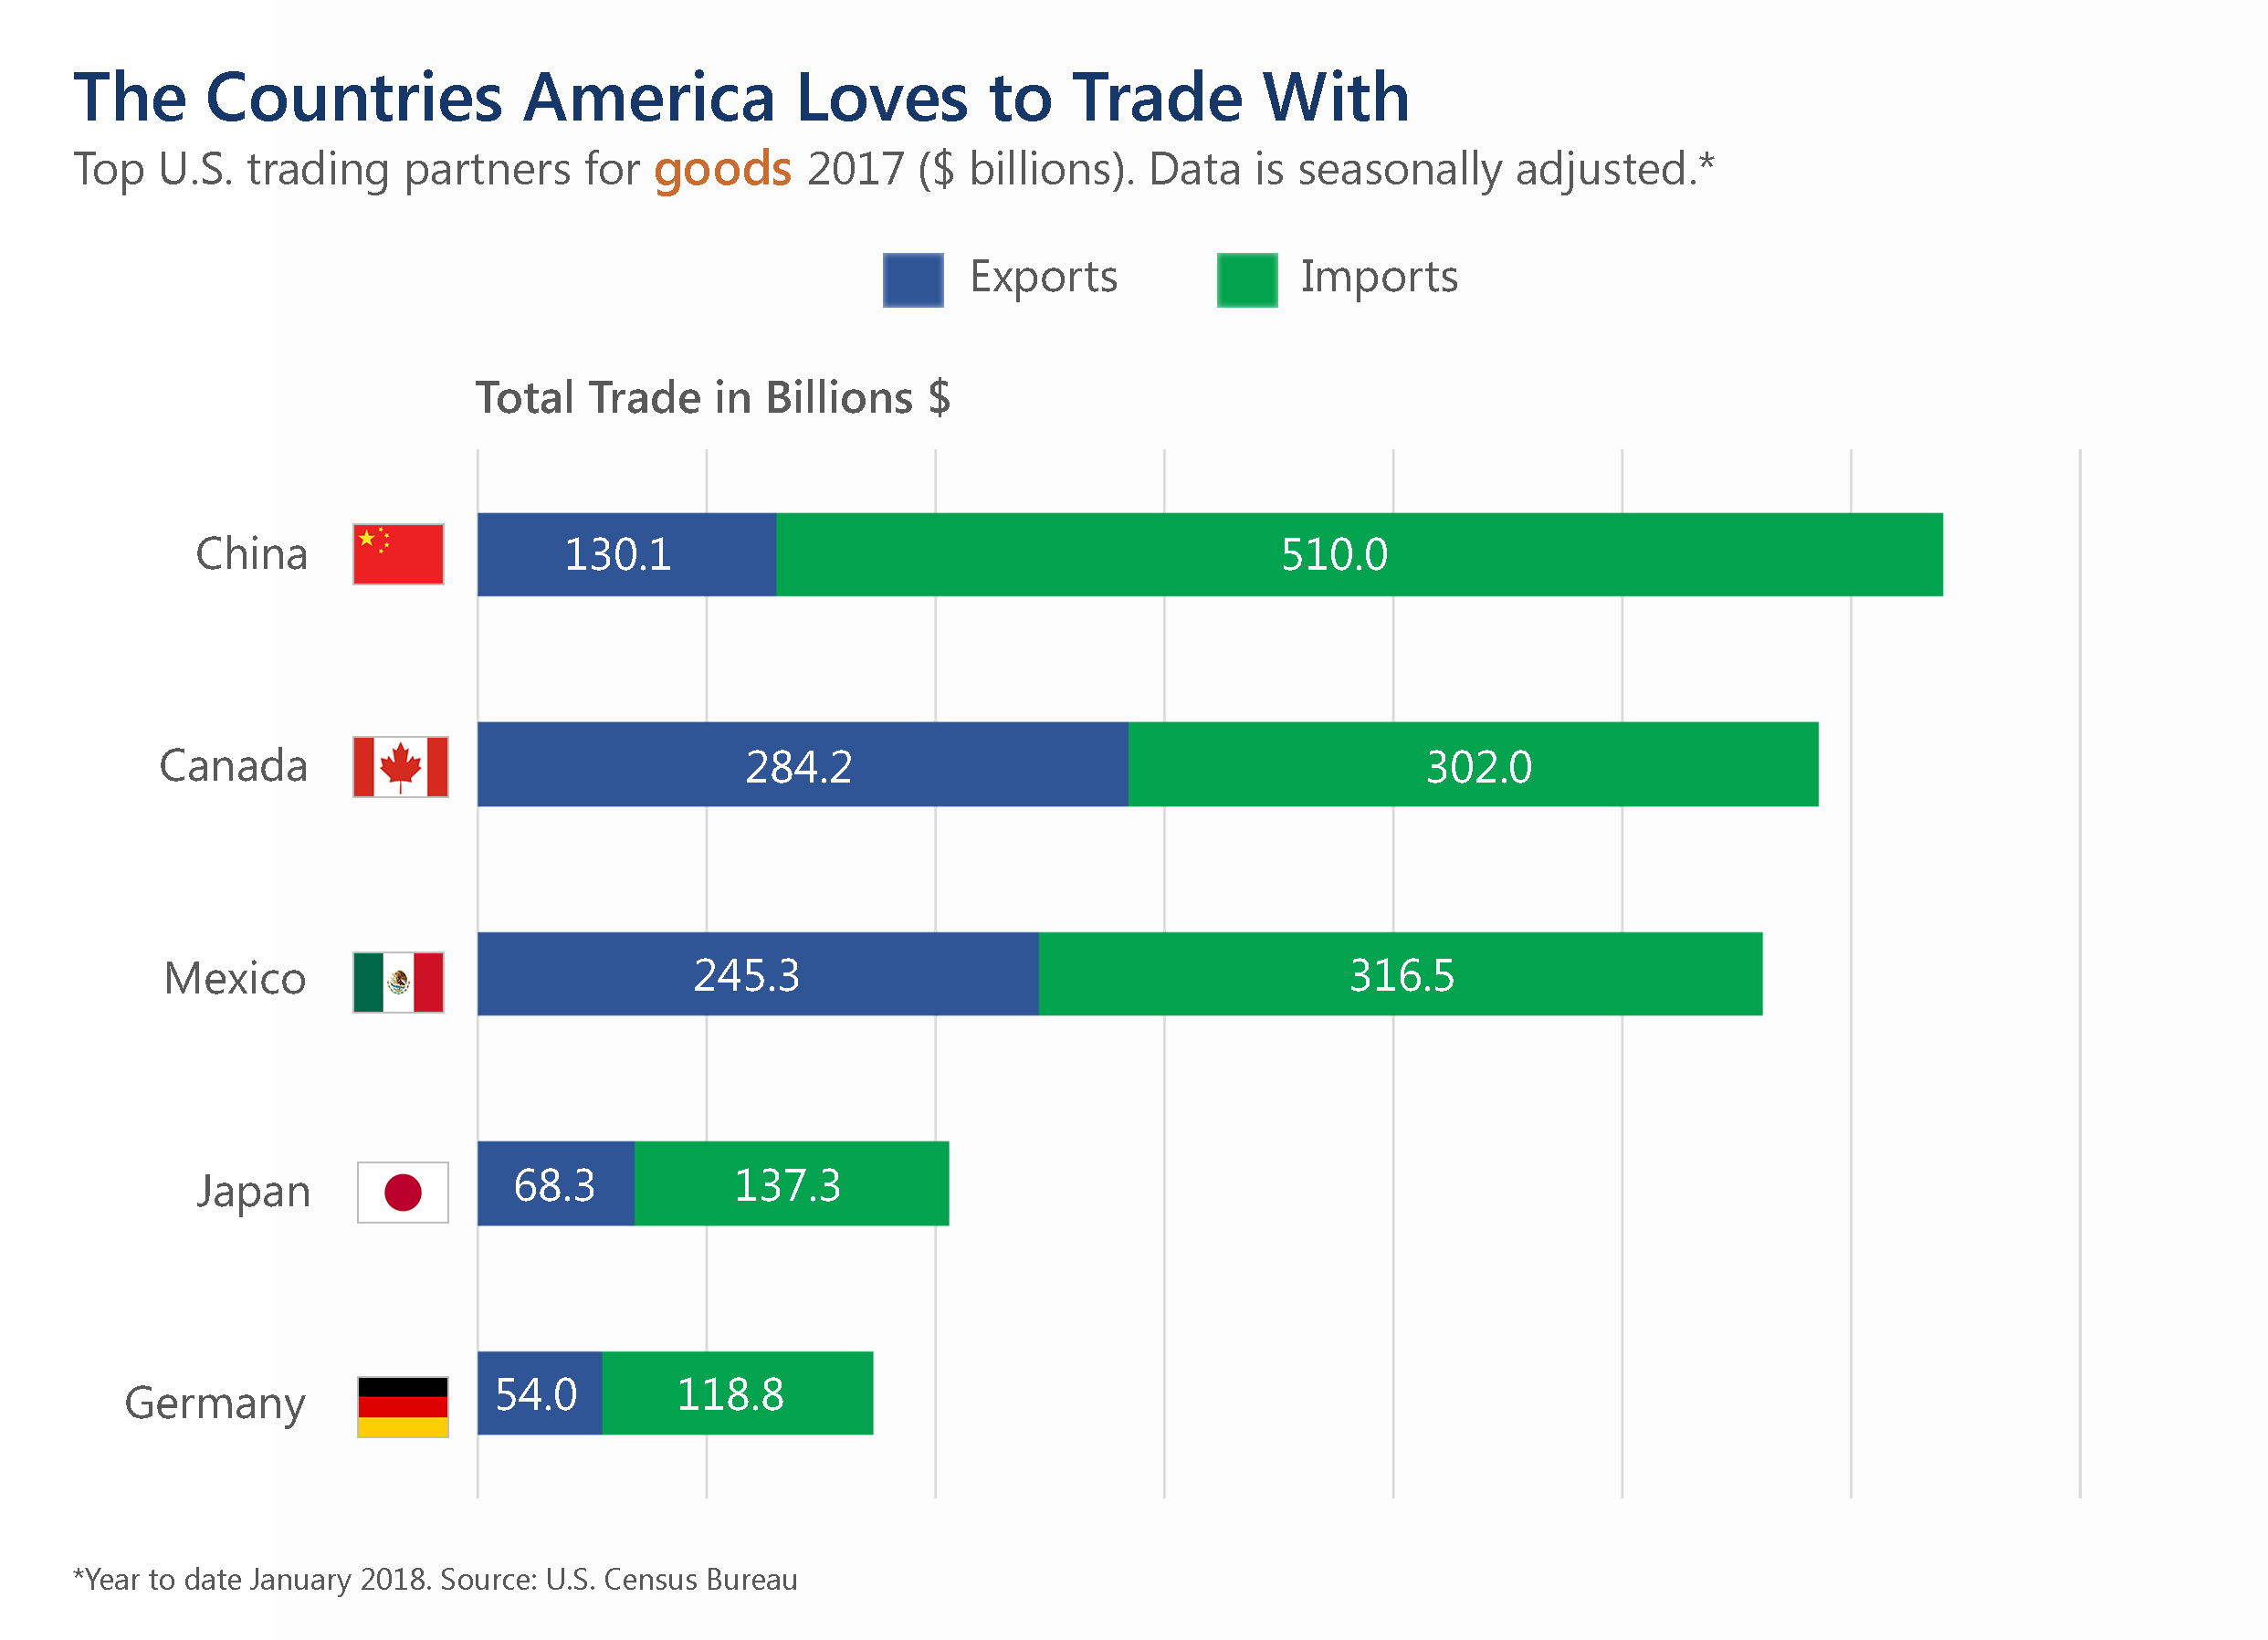 Countries America Loves Trade With